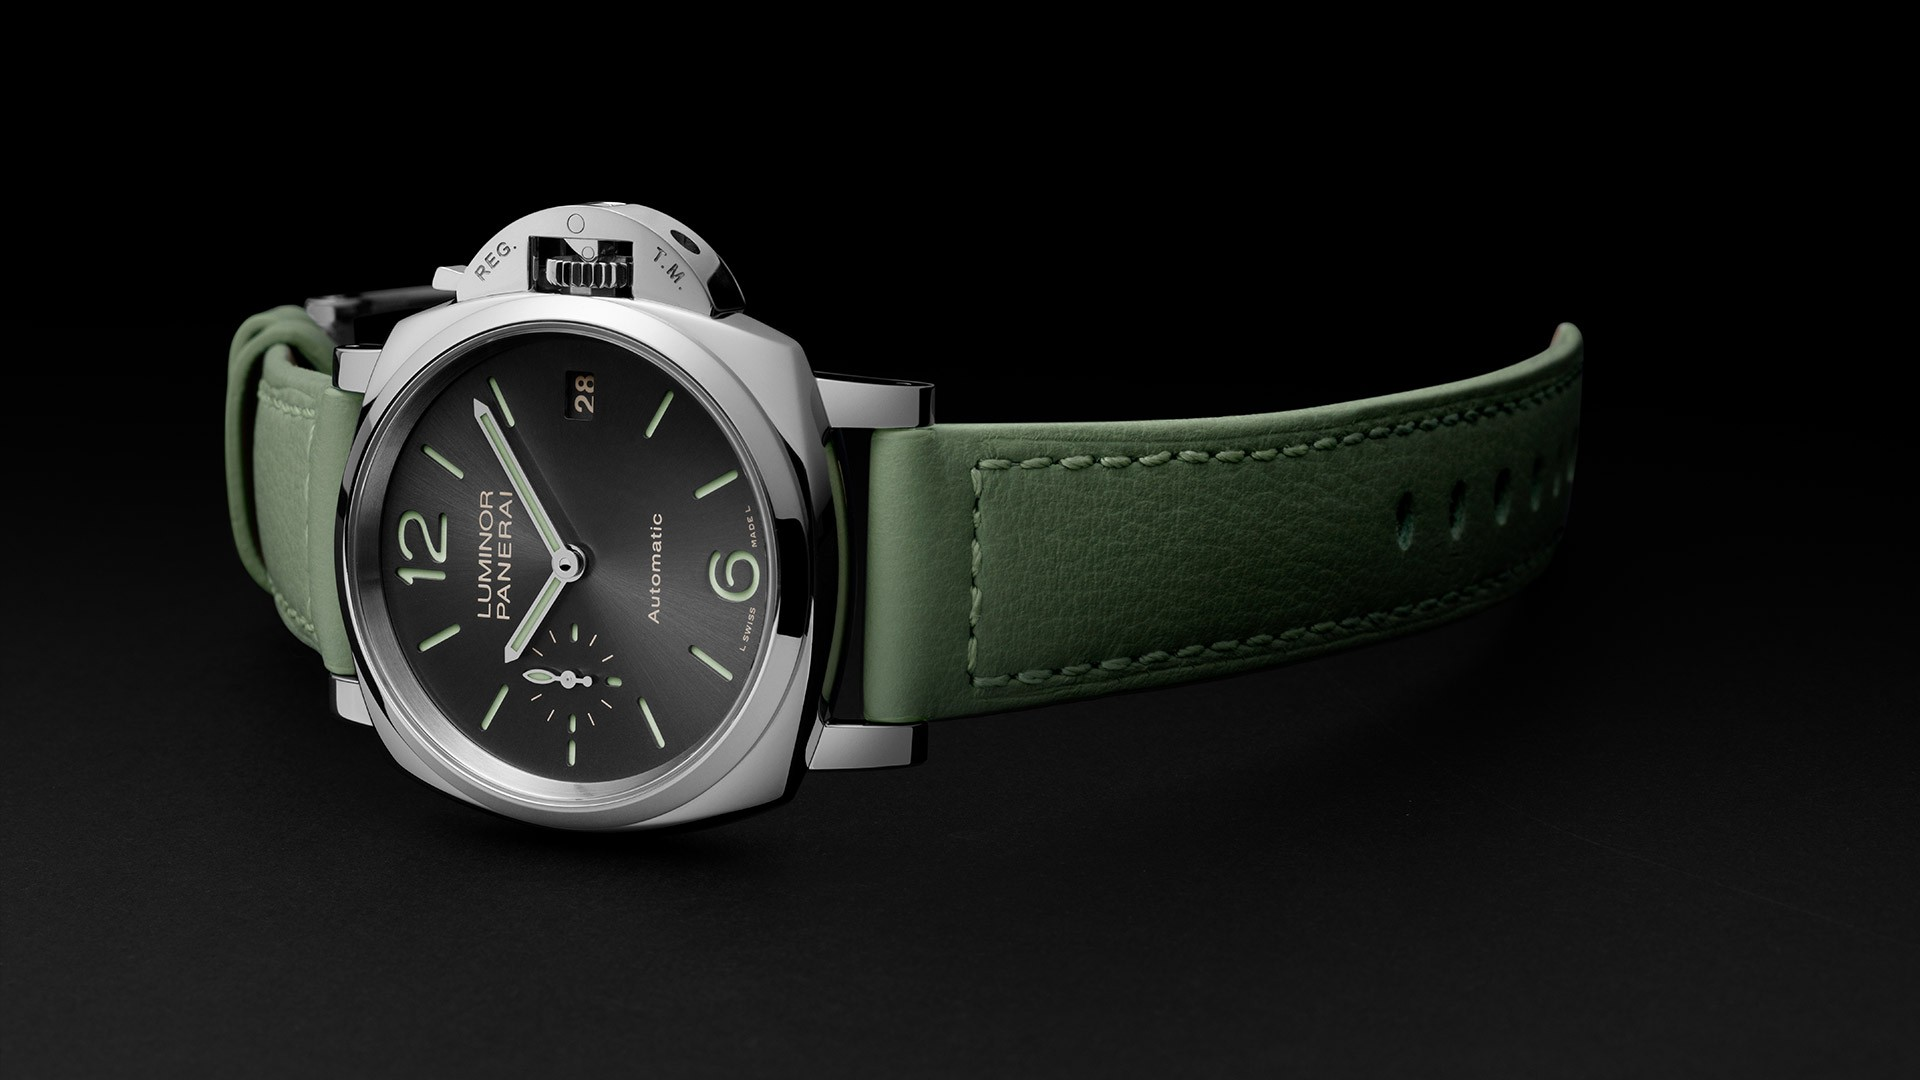 Panerai Luminor Due 38mm, SIHH 2018